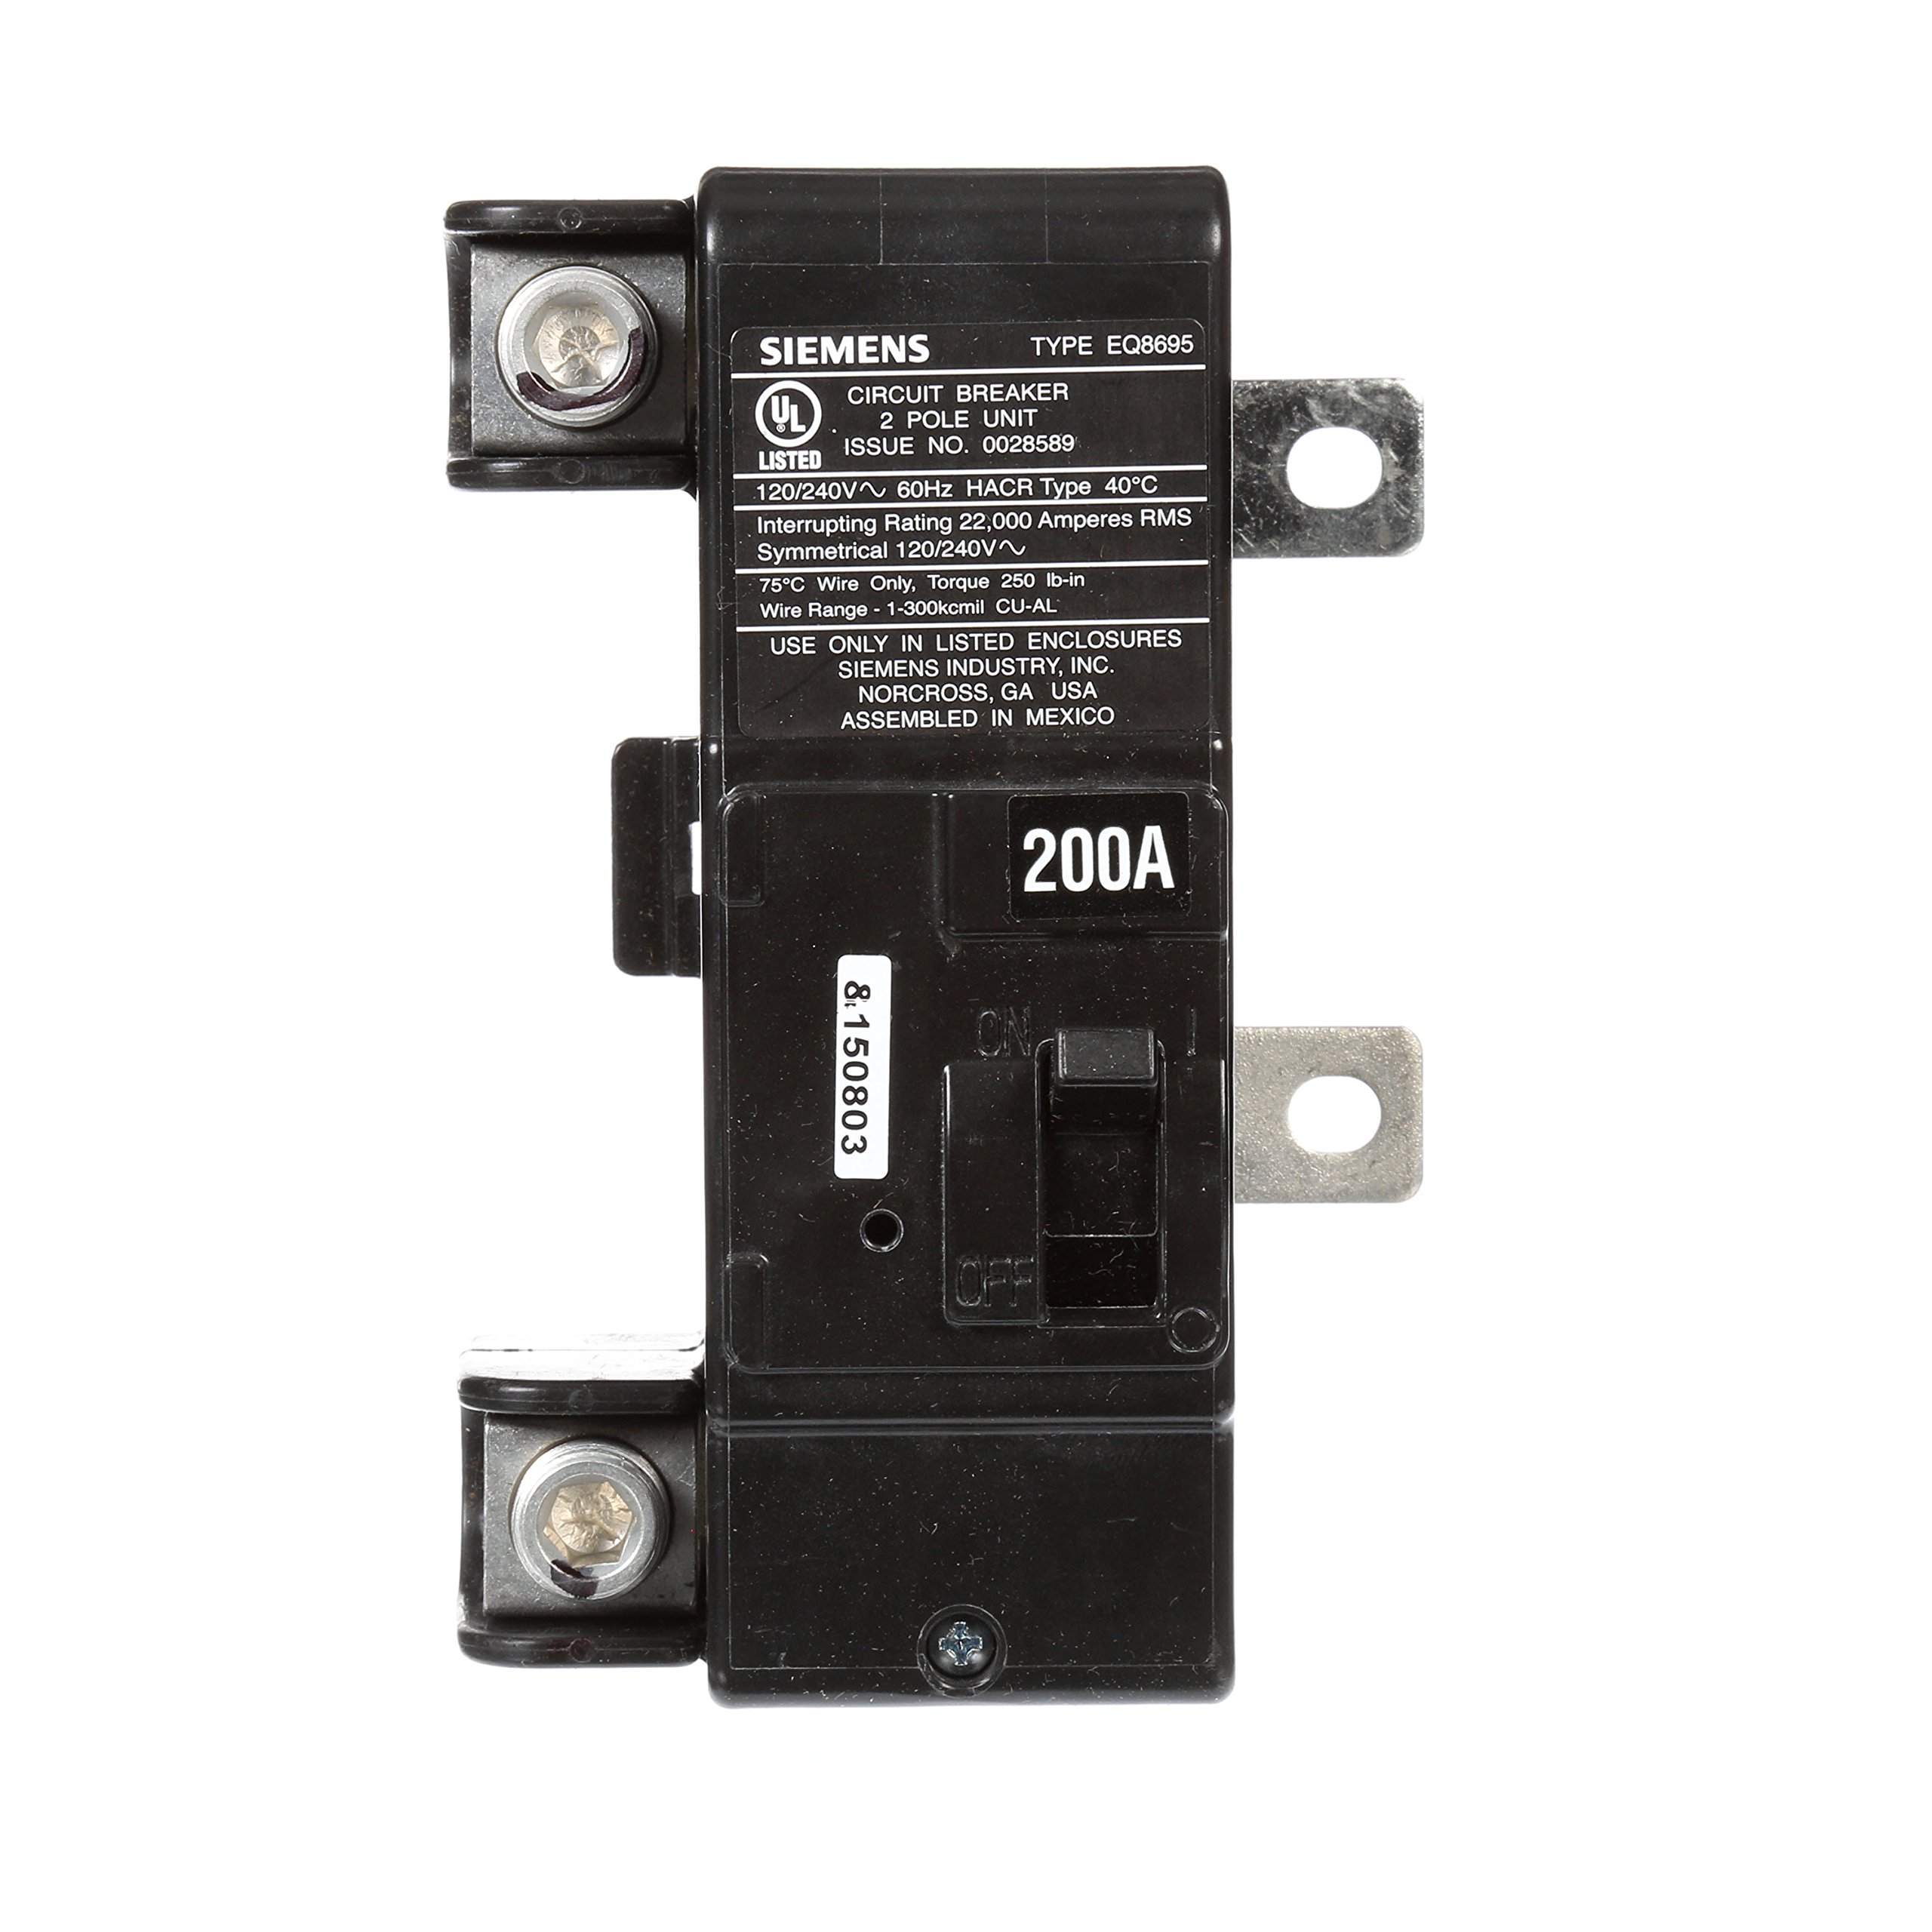 Siemens MBK200A 200-Amp Main Circuit Breaker for Use in Ultimate Type Load Centers by SIEMENS